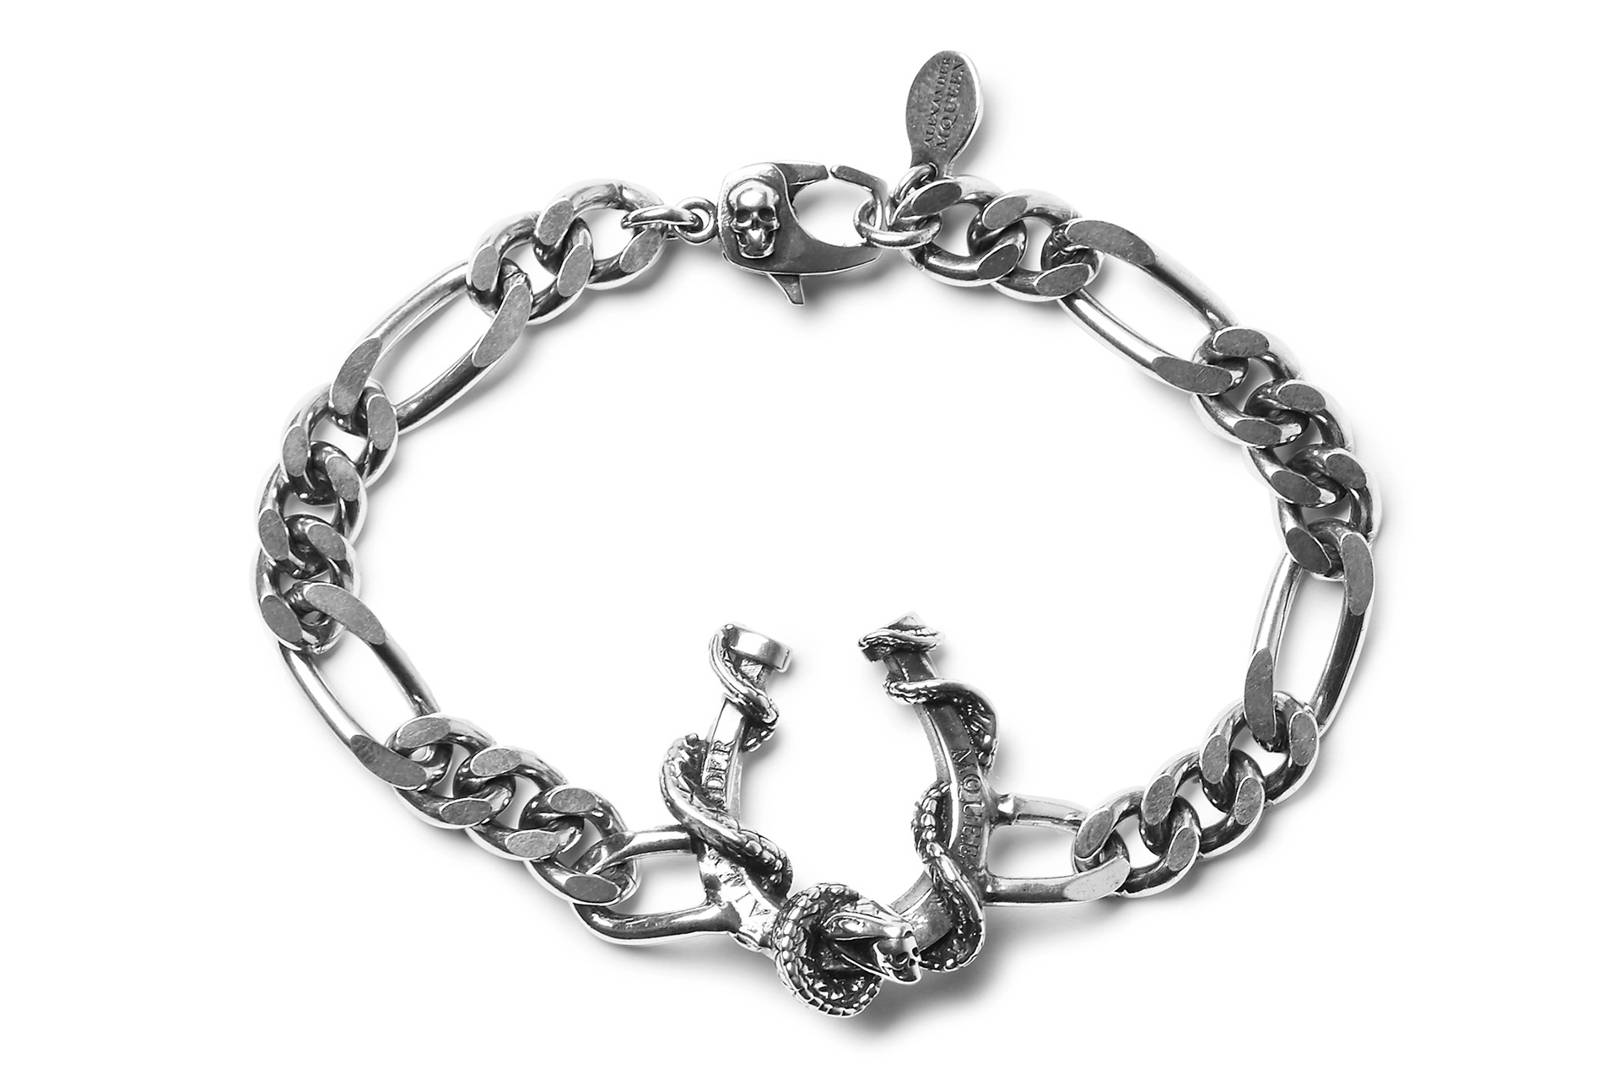 Mens bracelets will tell all the character